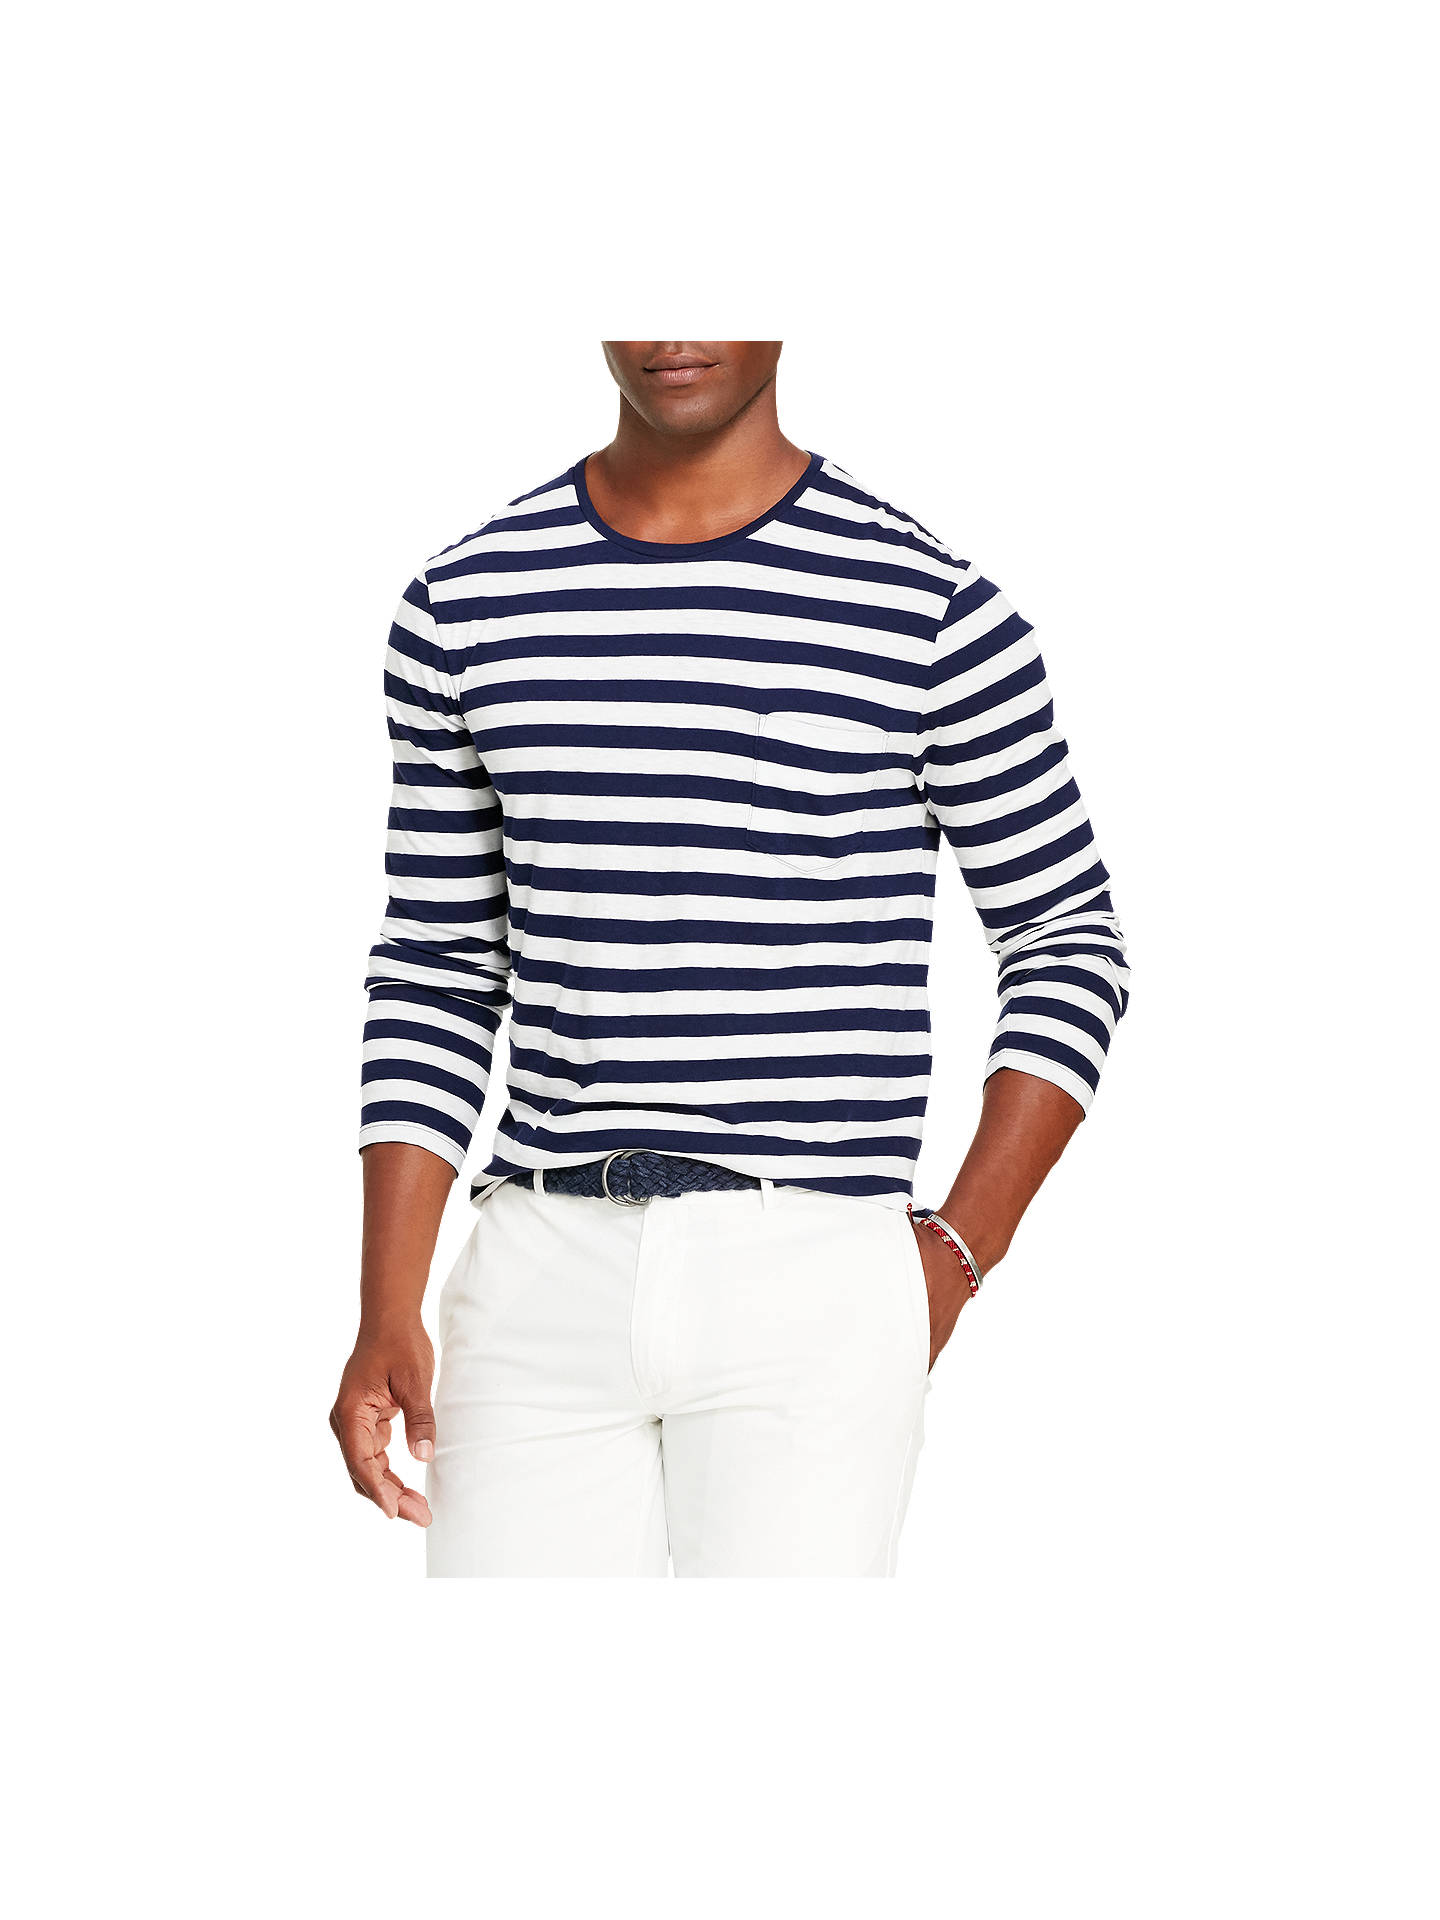 69384ba2 Buy Polo Ralph Lauren Striped Long Sleeve T-Shirt, Cruise Navy/White, ...